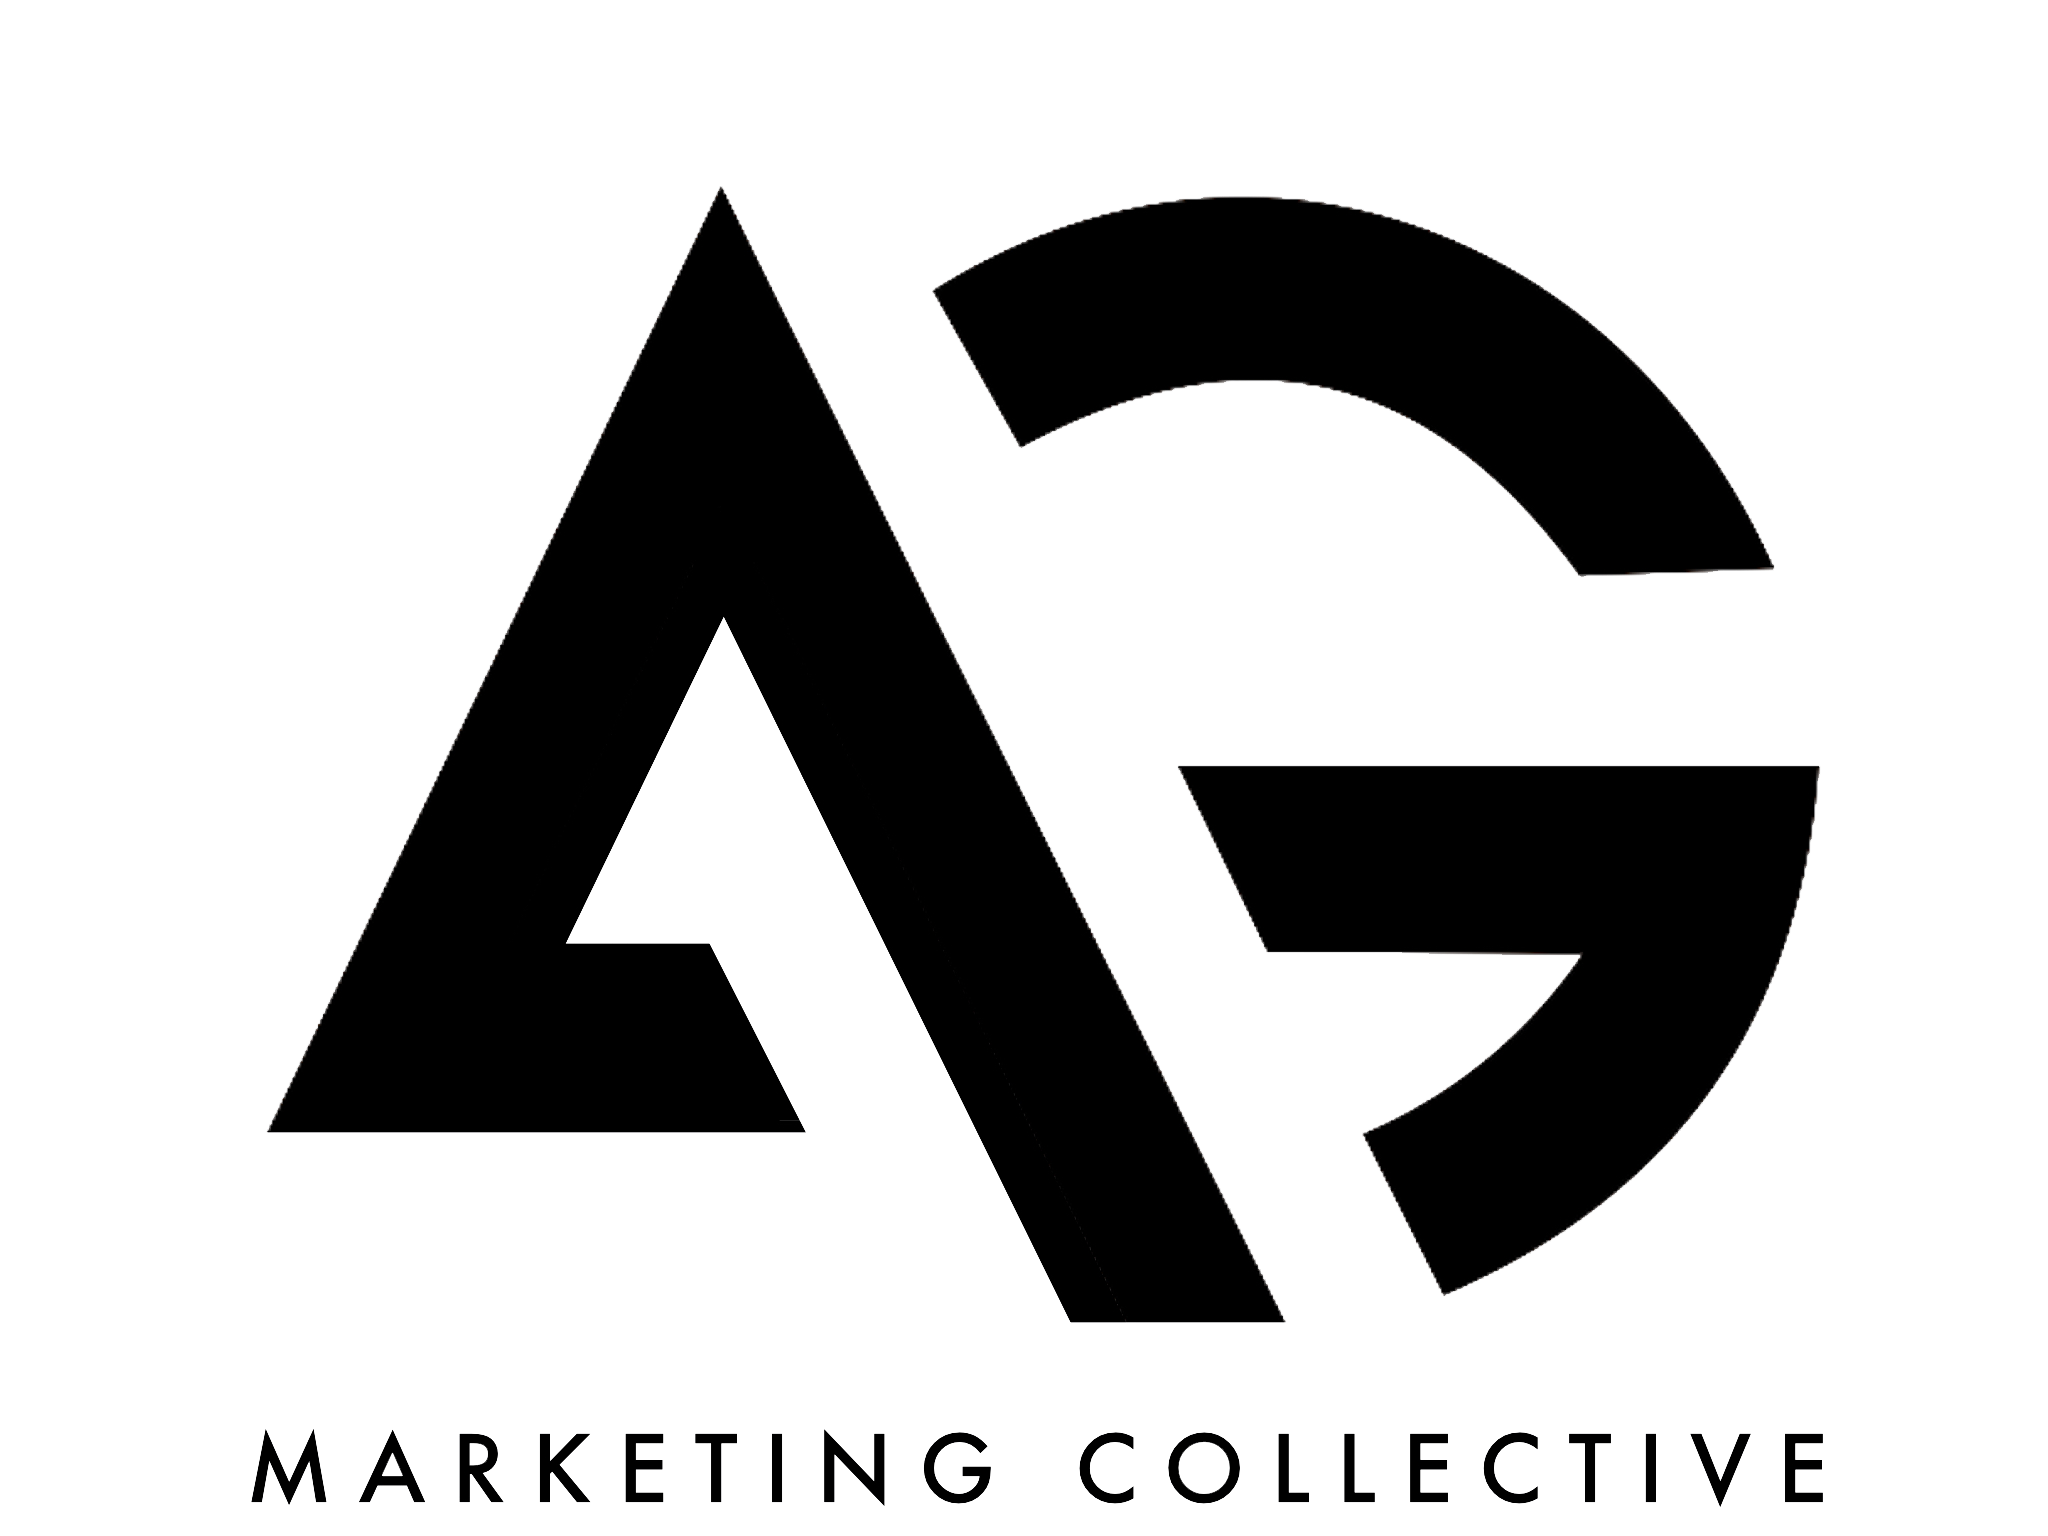 AG MARKETING COLLECTIVE LOGO.001.png